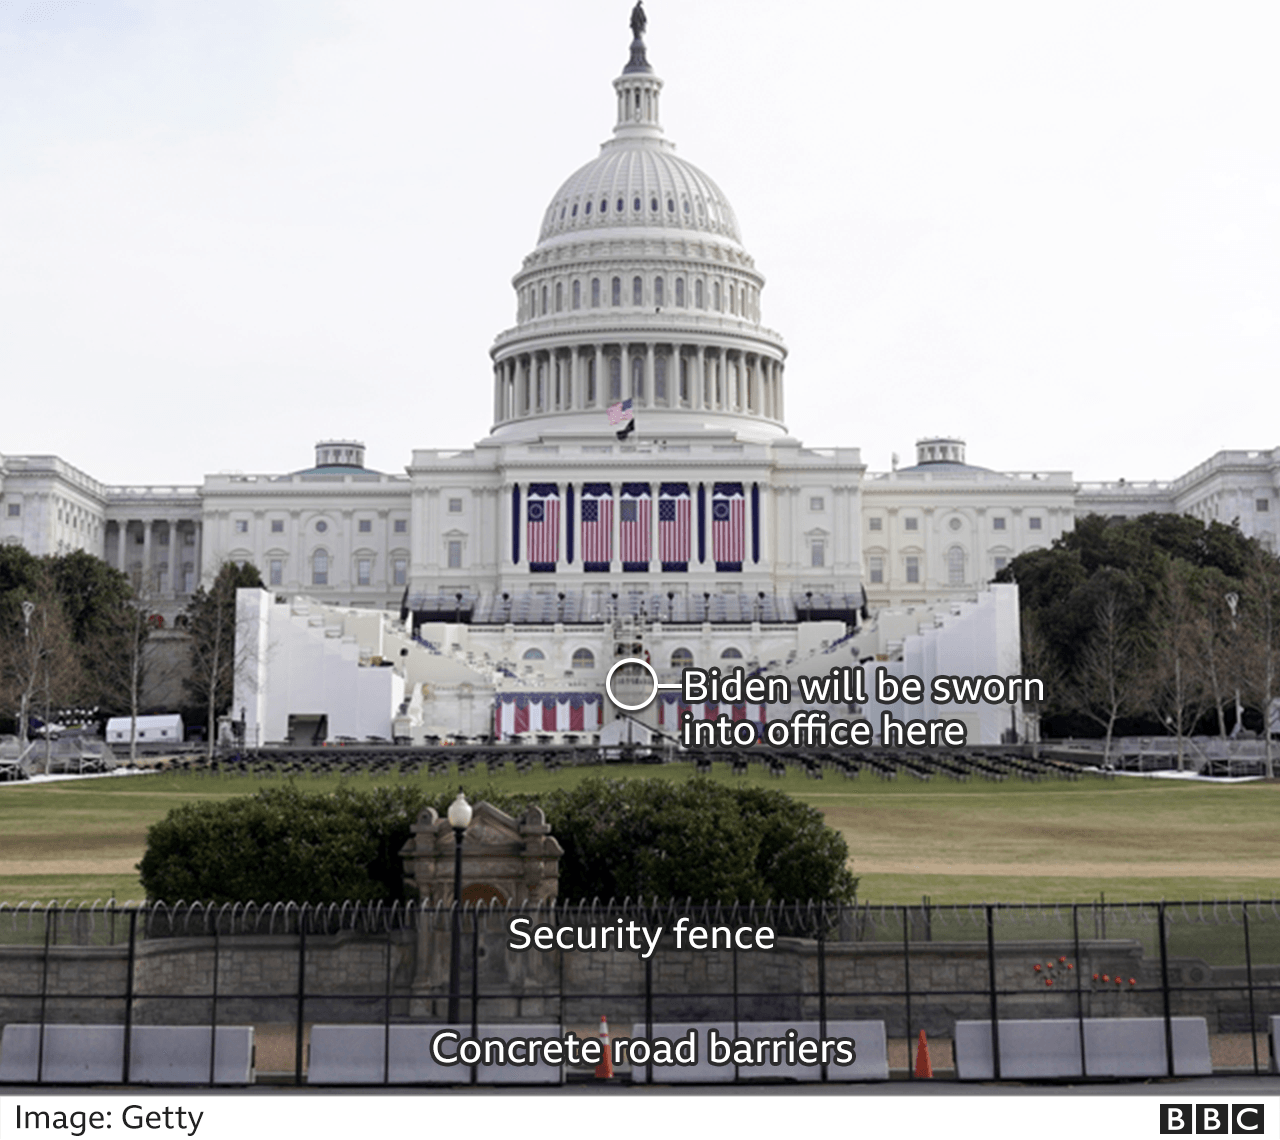 Graphic showing the spot where Mr Biden will be sworn in and where the security fencing has been erected